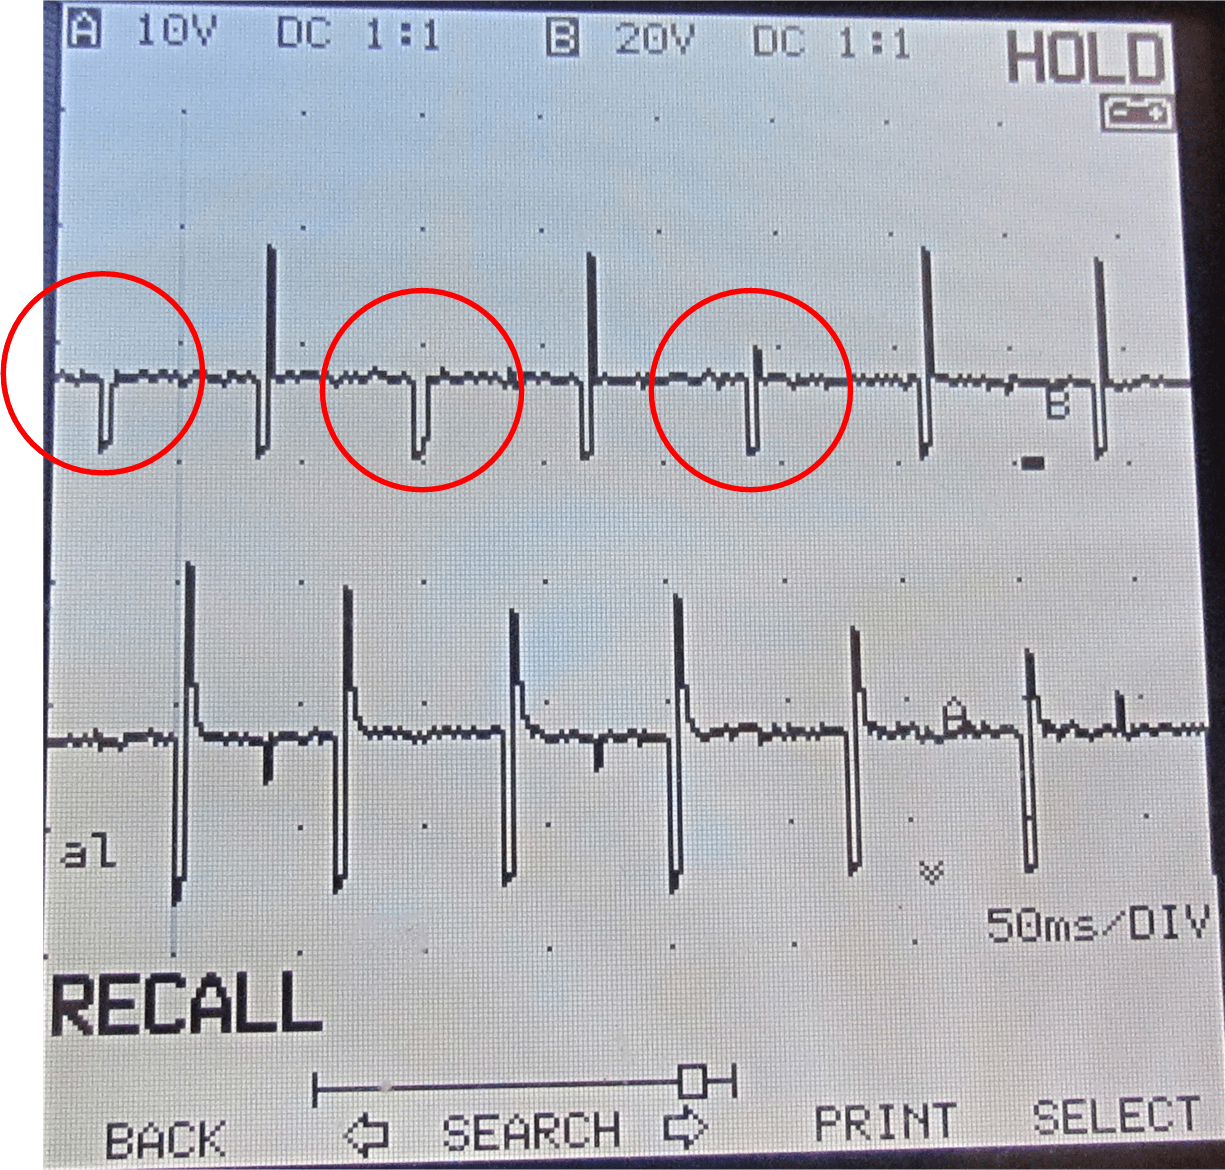 hight resolution of i hooked up my two channel scope meter to ground and back probed pins 1 and 3 of the ignition coil in koer mode i noticed that the pcm was definitely